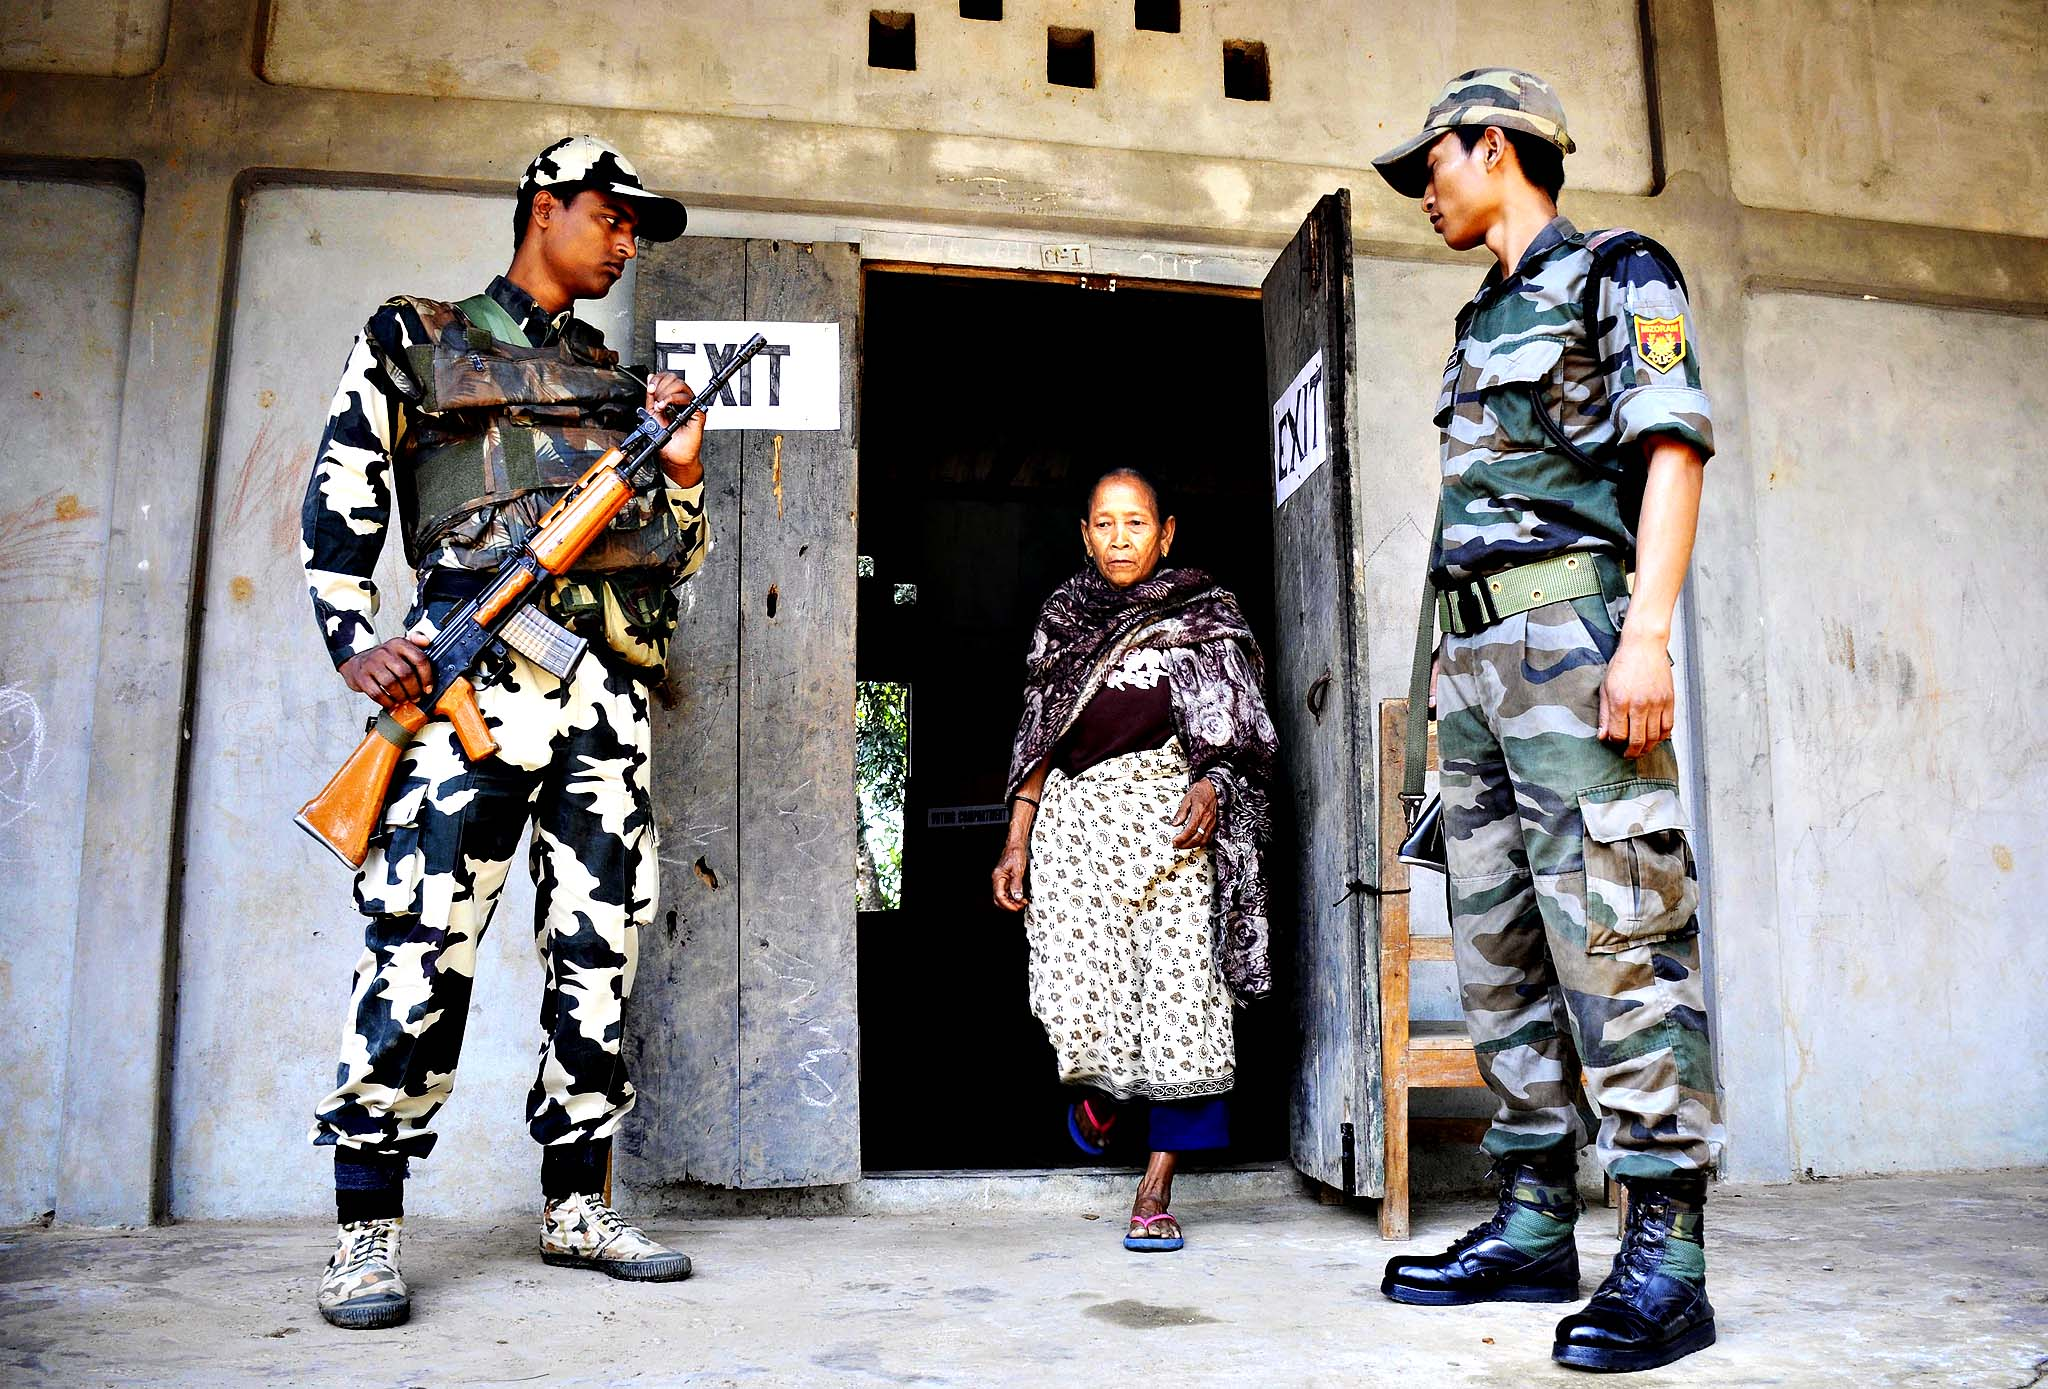 Indian security personnel look on as a voter leaves a polling station after casting her ballot in Kahnmun, some 190 kms from Aizwal, the capital of the northeastern Indian state of Mizoram on April 11, 2014. Indians began voting April 7 in the world's biggest election, which is set to sweep the Hindu nationalist opposition to power at a time of low growth, anger over corruption and warnings about religious unrest. Elections are being held in nine phases from April 7 until May 12.